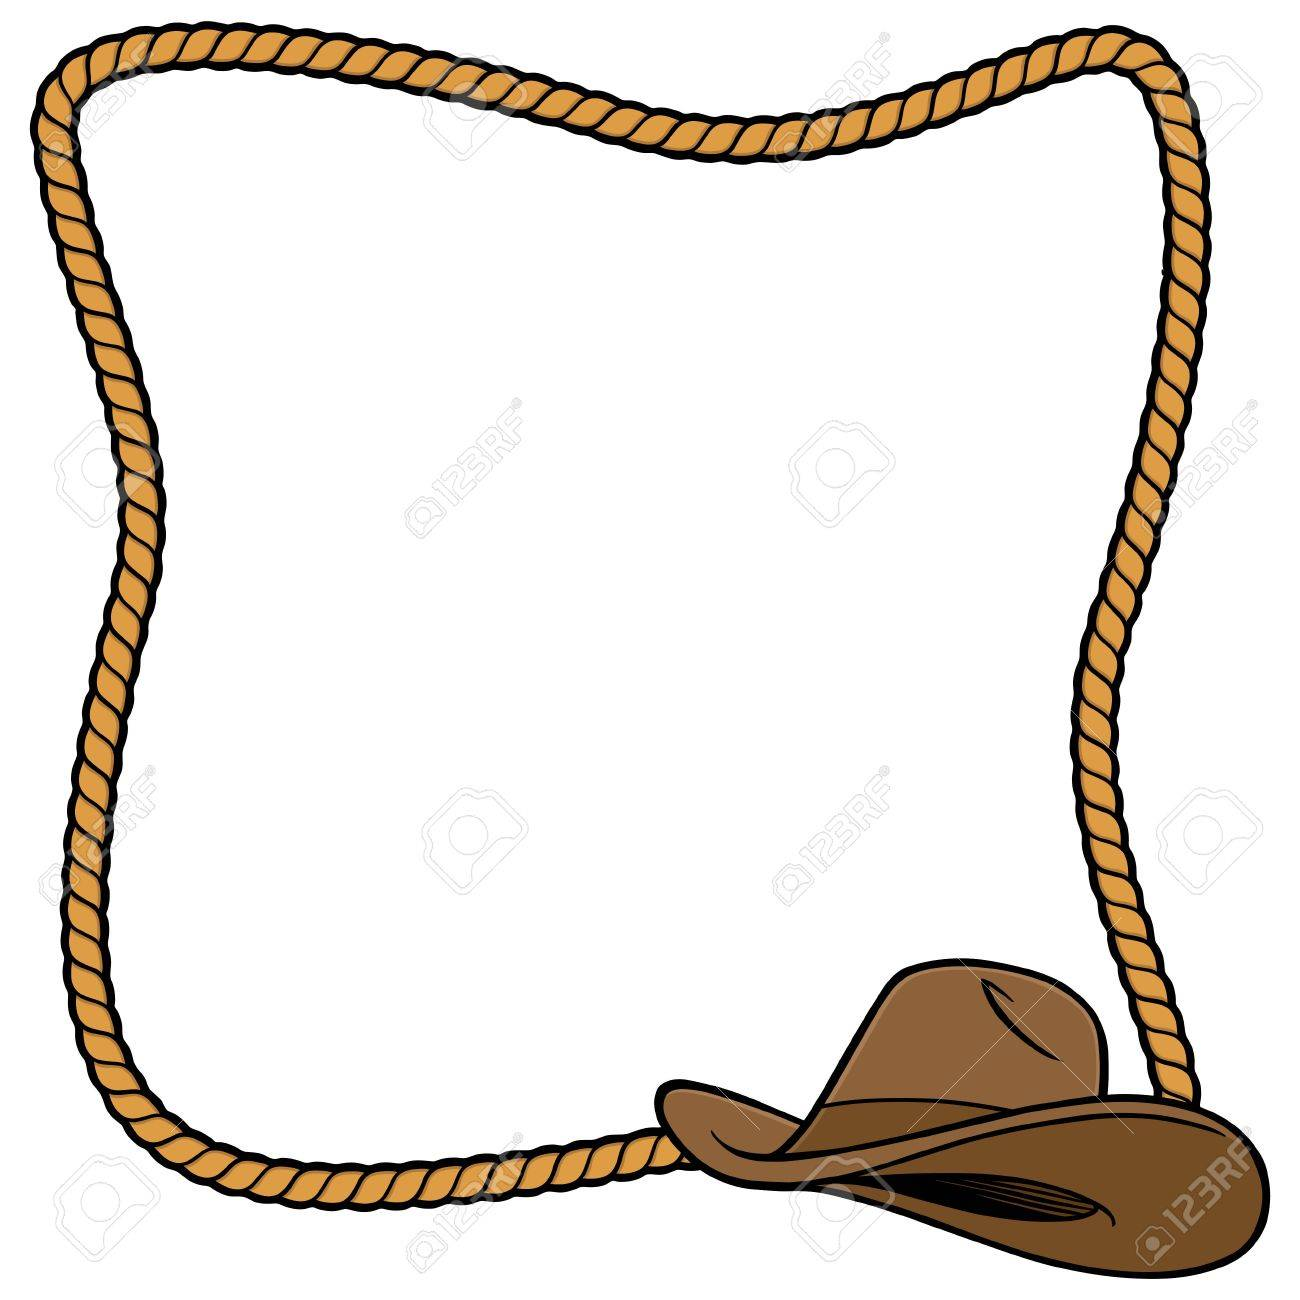 rope frame and cowboy hat royalty free cliparts, vectors, and stock  illustration. image 57875022.  123rf